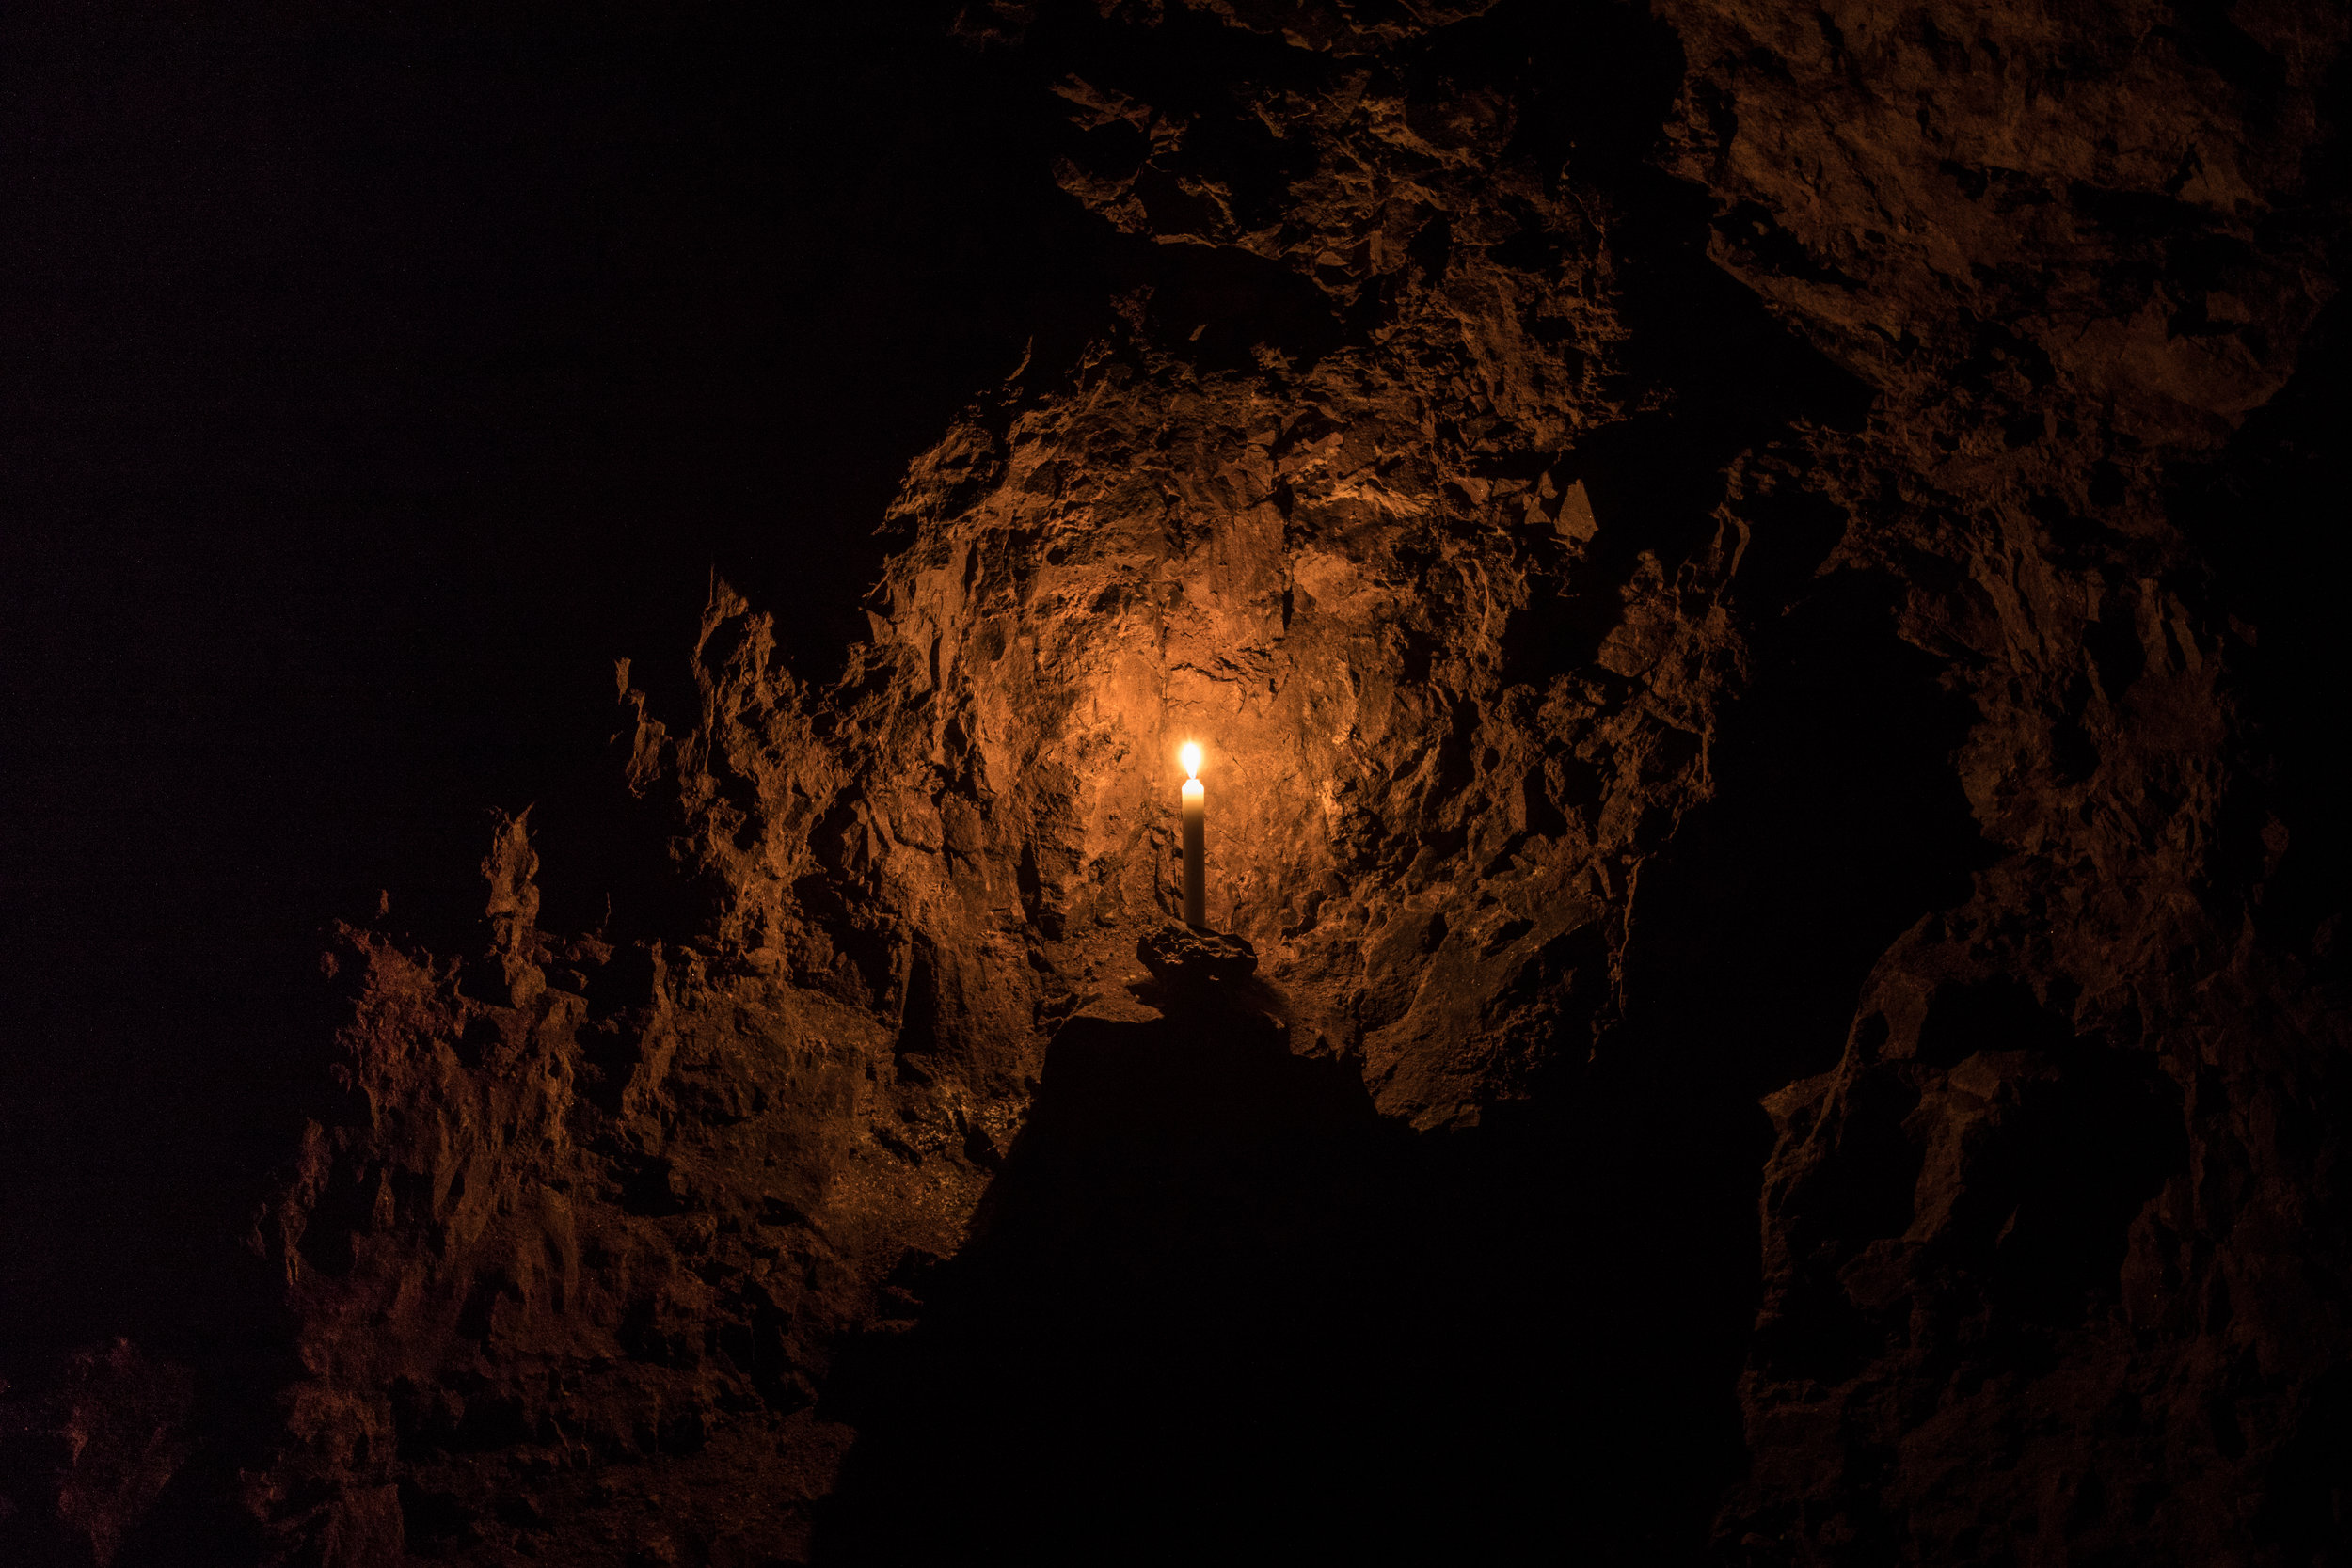 imagine_photography-cheltenham_photography_company-clearwell_caves-caving-lowlight-commercial_photography-agency-marketing-design-1-2.jpg